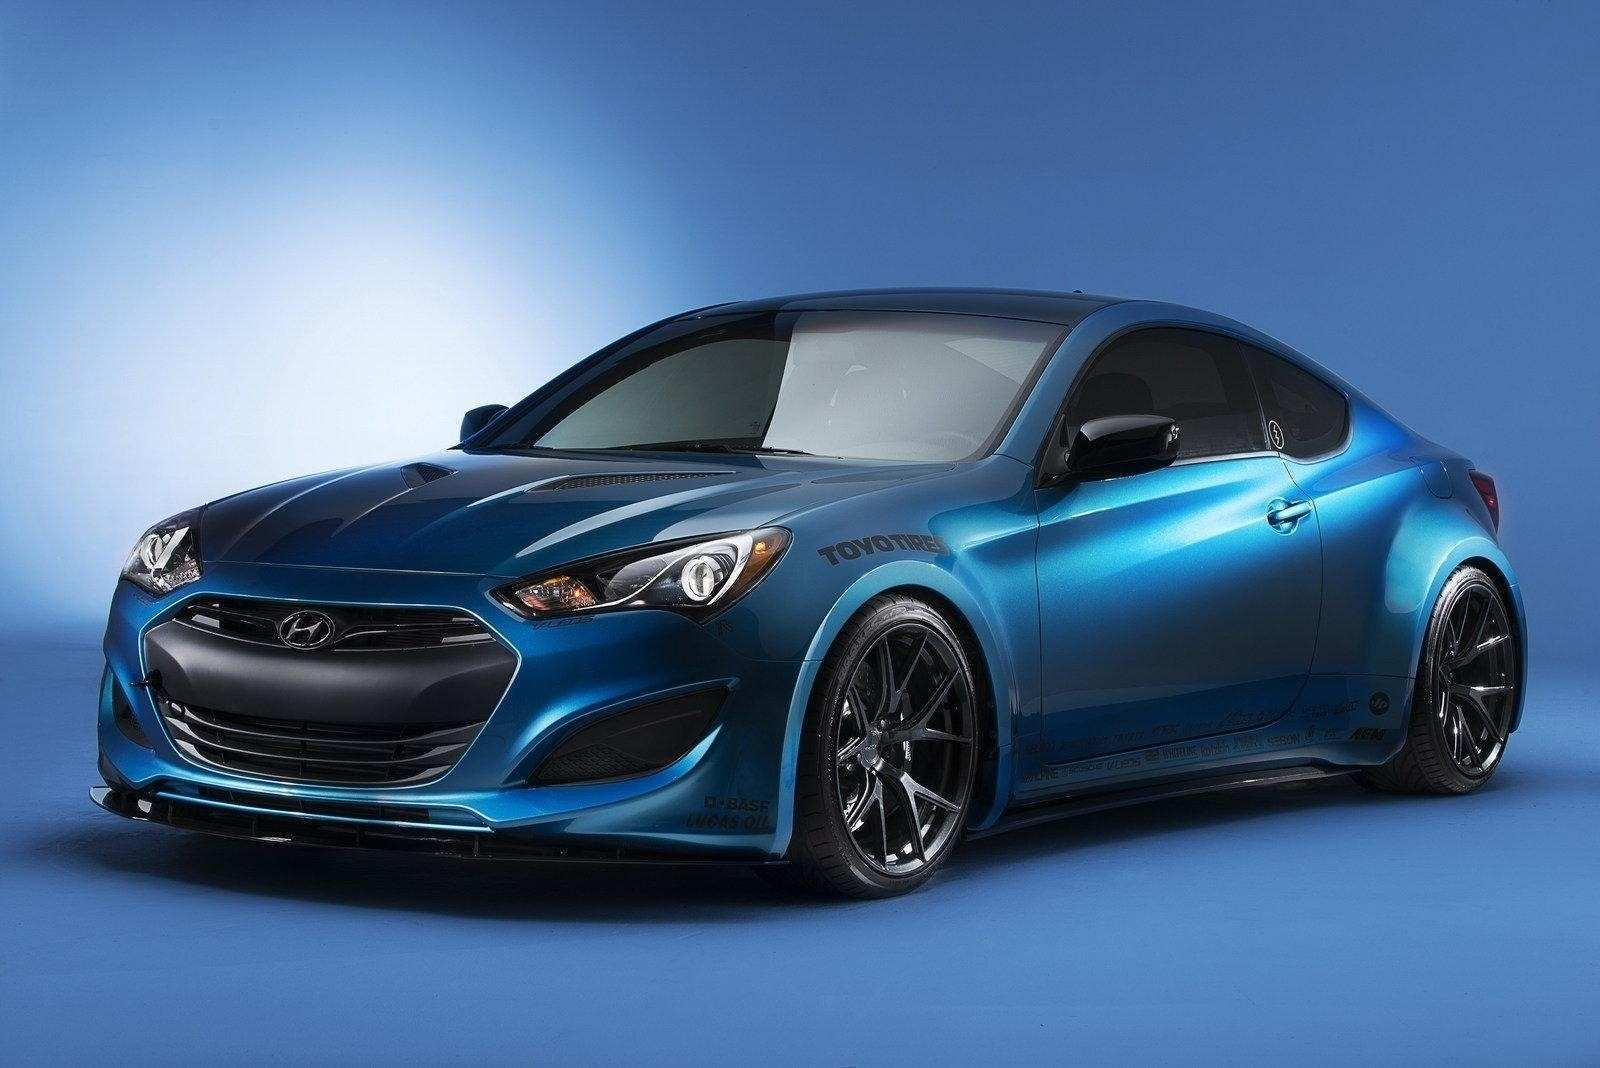 90 A 2019 Hyundai Genesis Coupe Picture